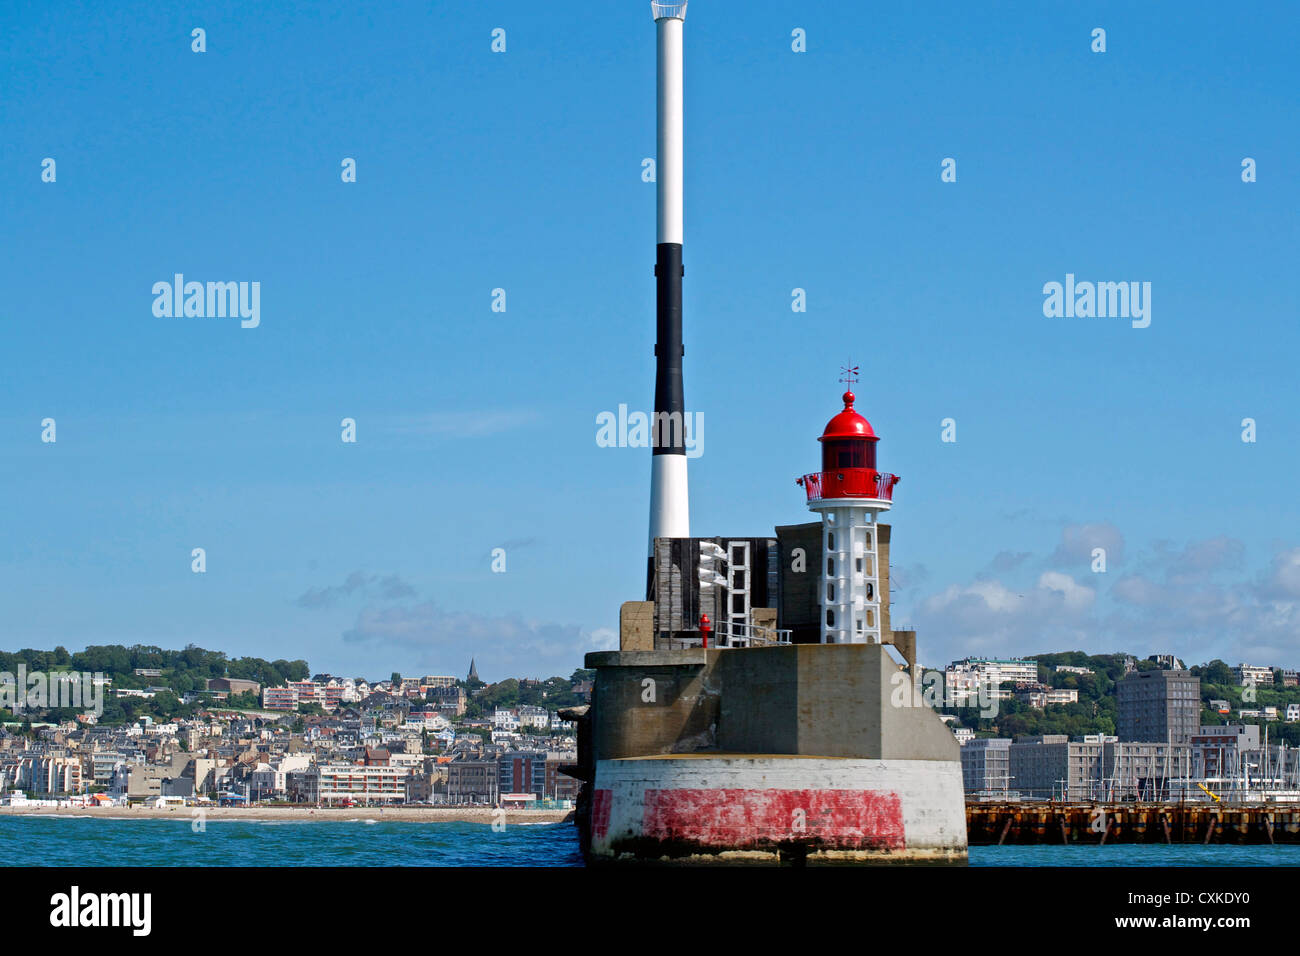 Lighthouse in red and white with a blue sky - Stock Image